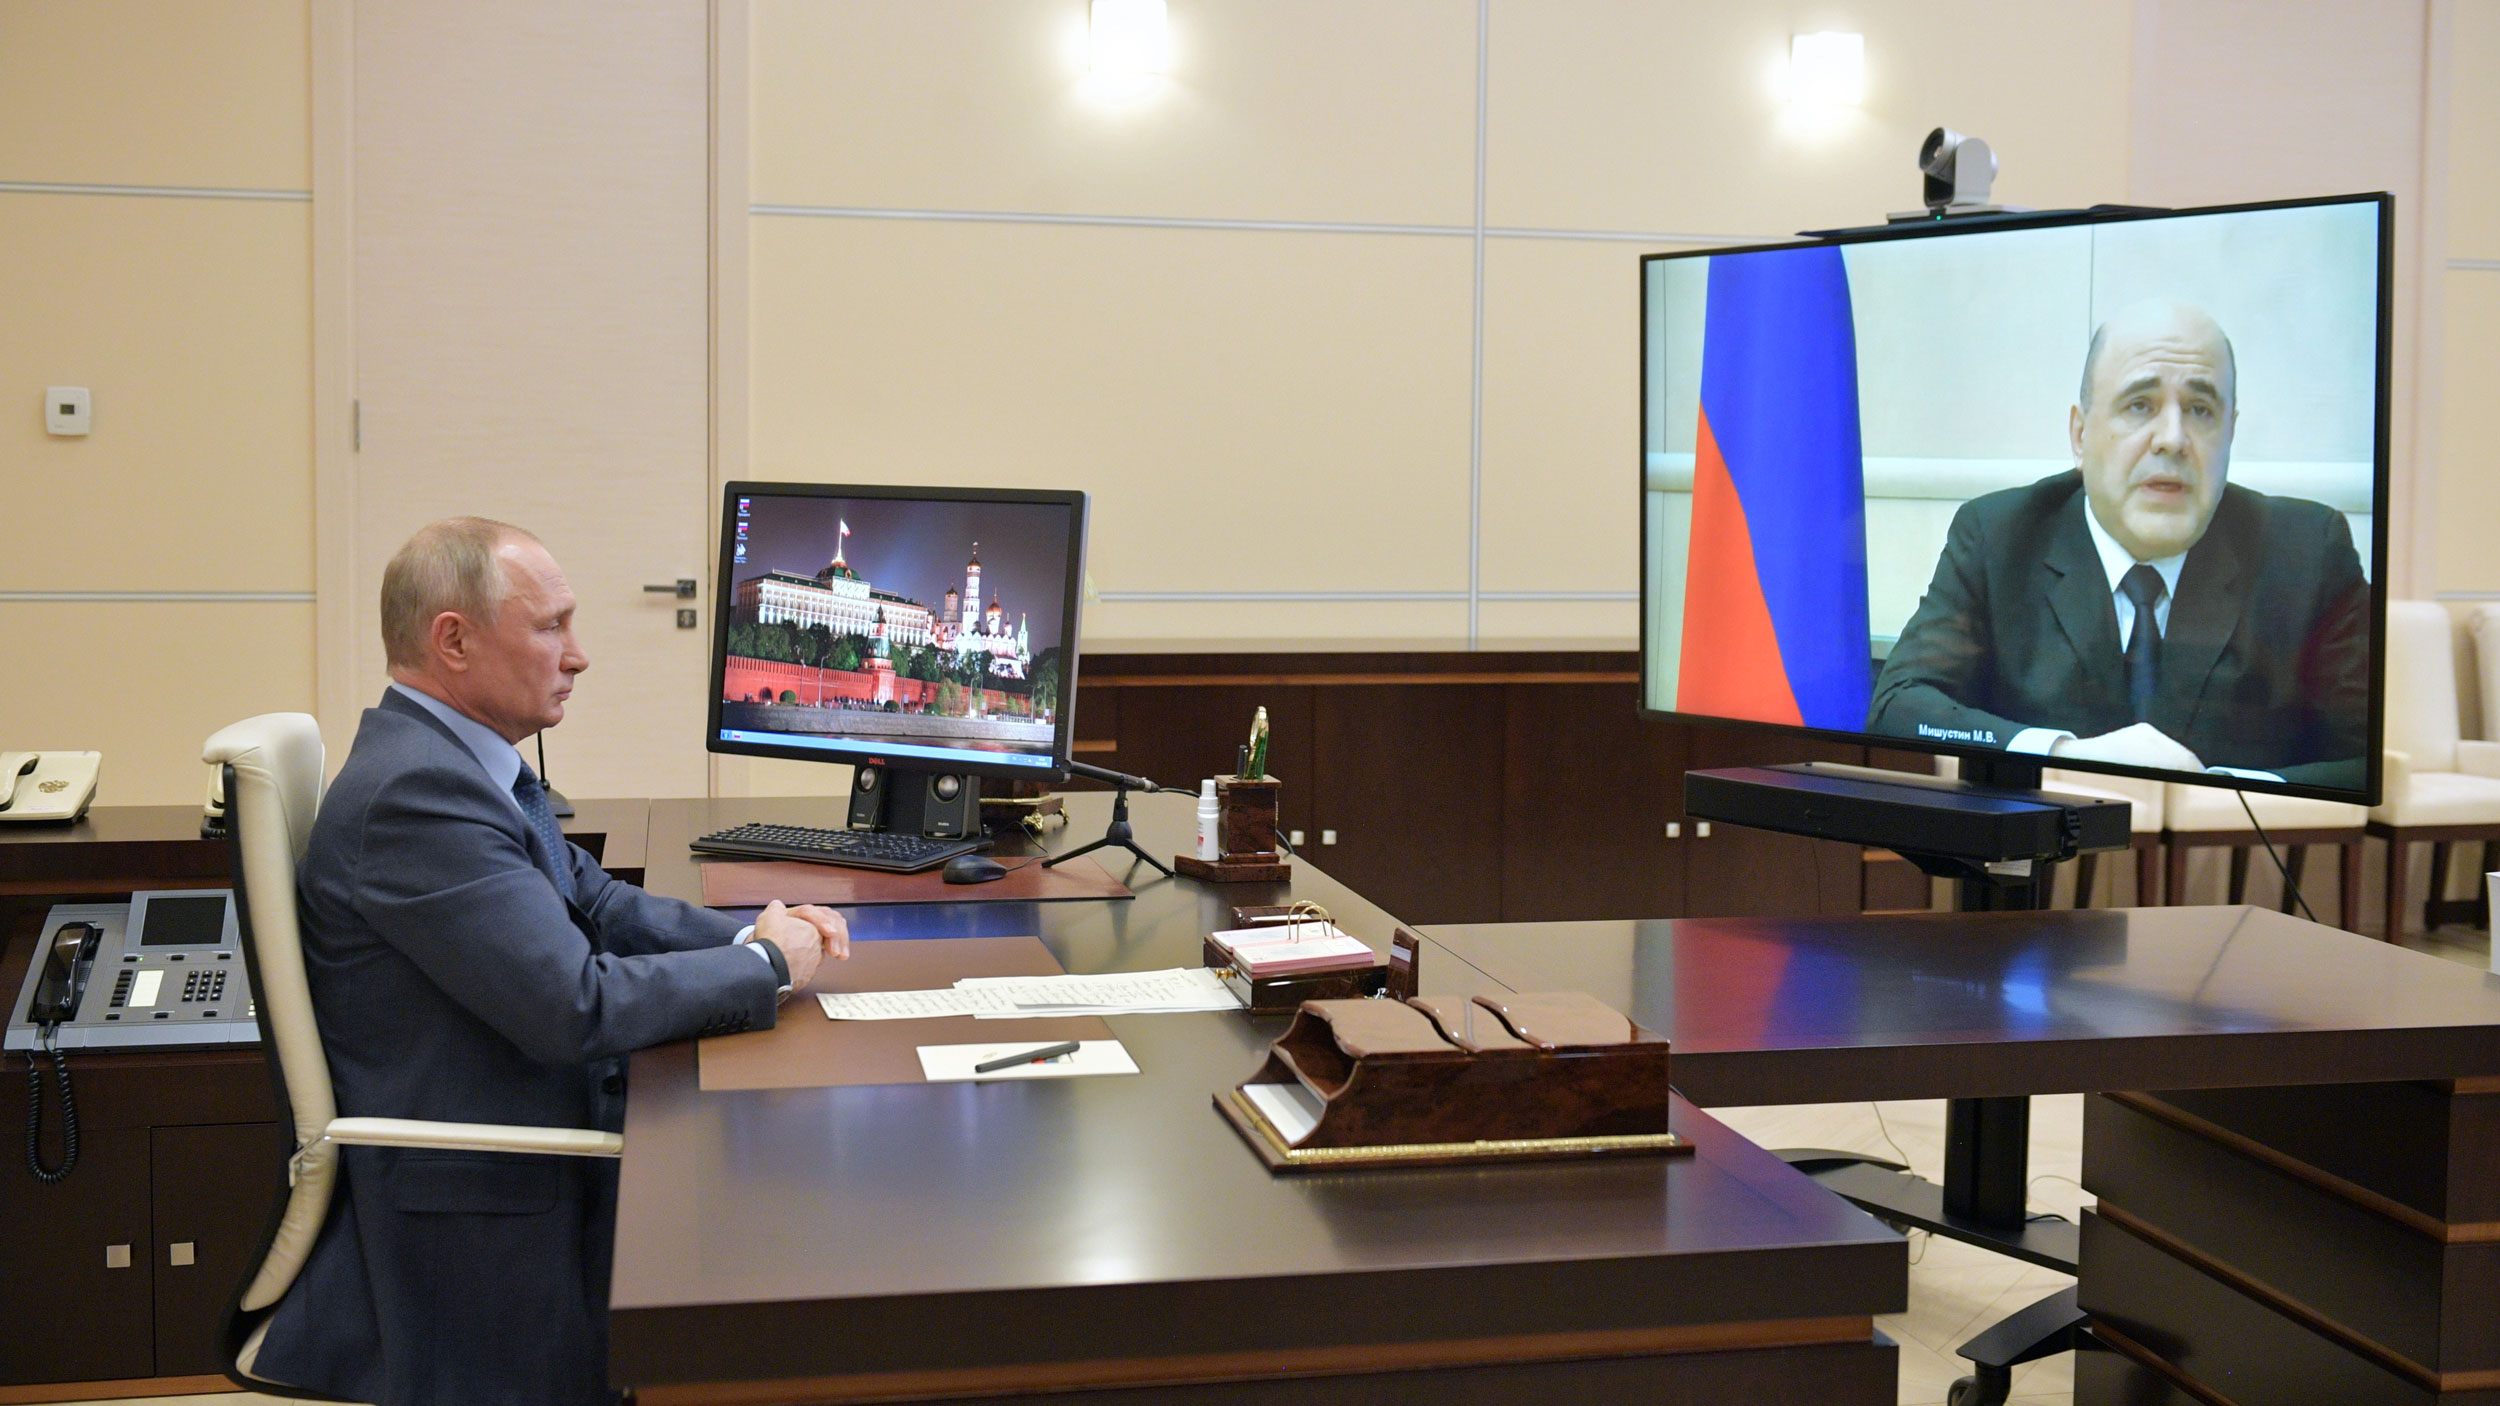 A man at a desk looks at a man on large screen